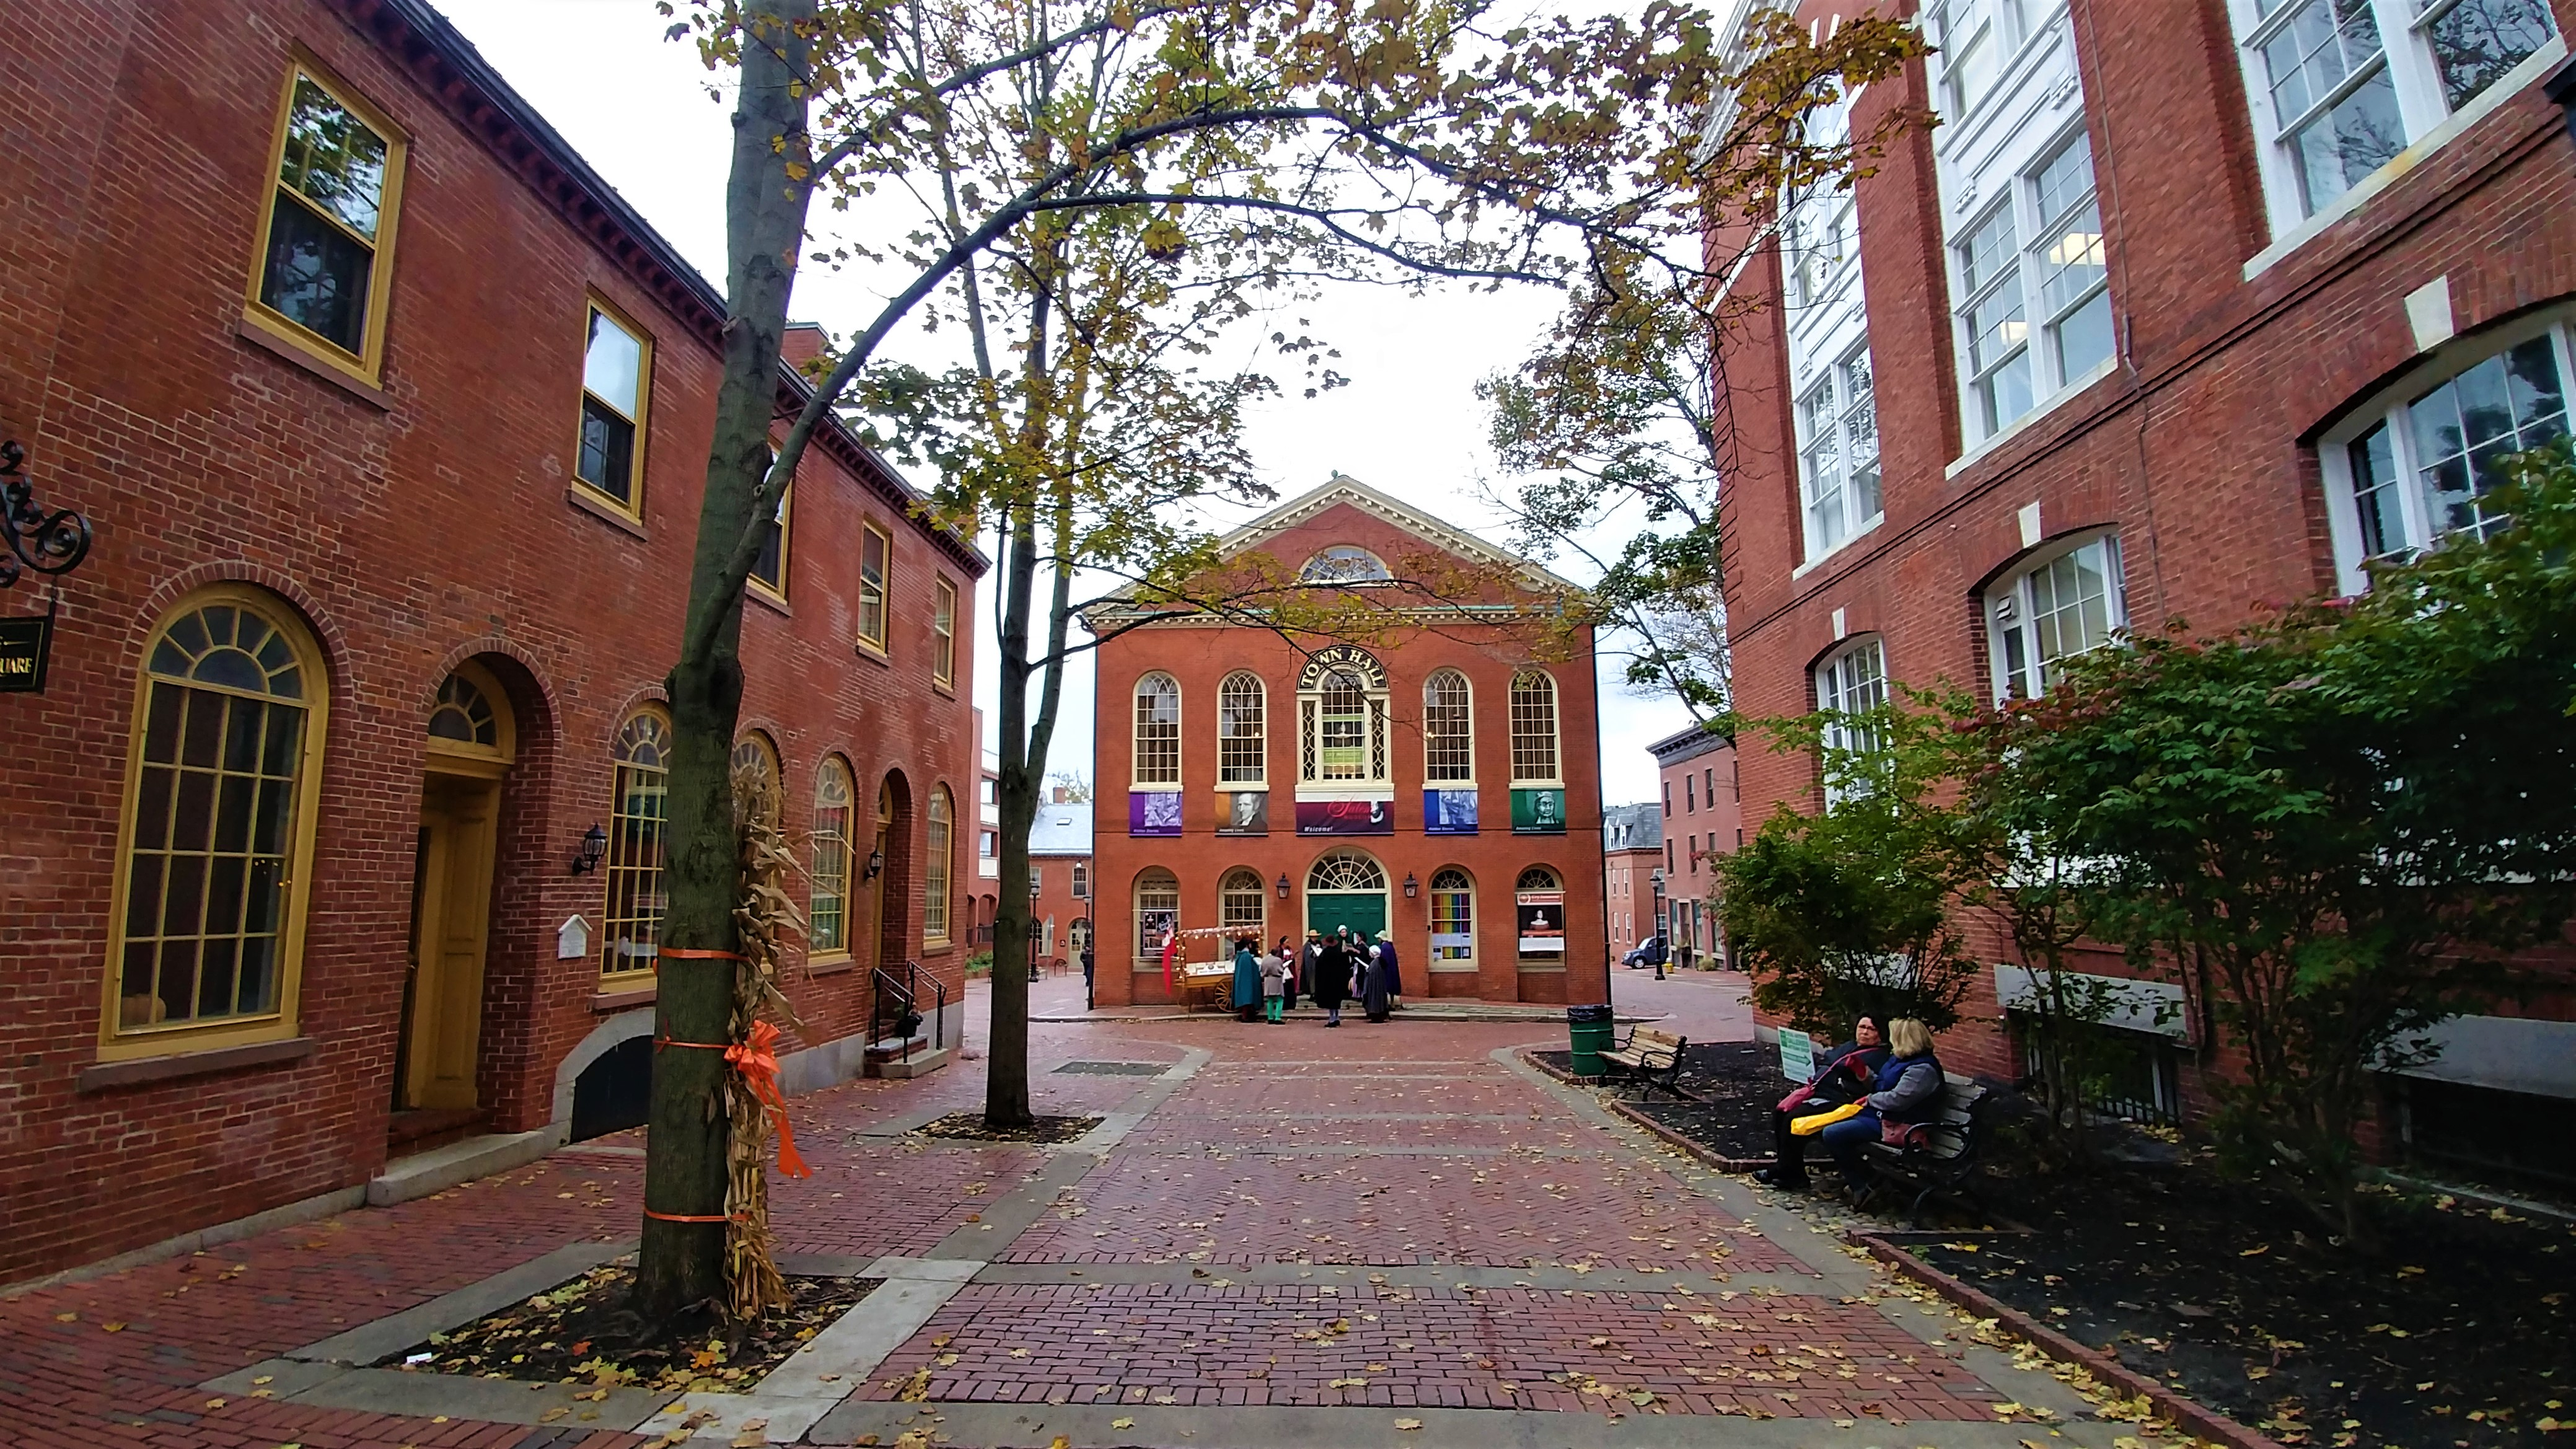 salem massachussets voyage road-trip arpenter le chemin